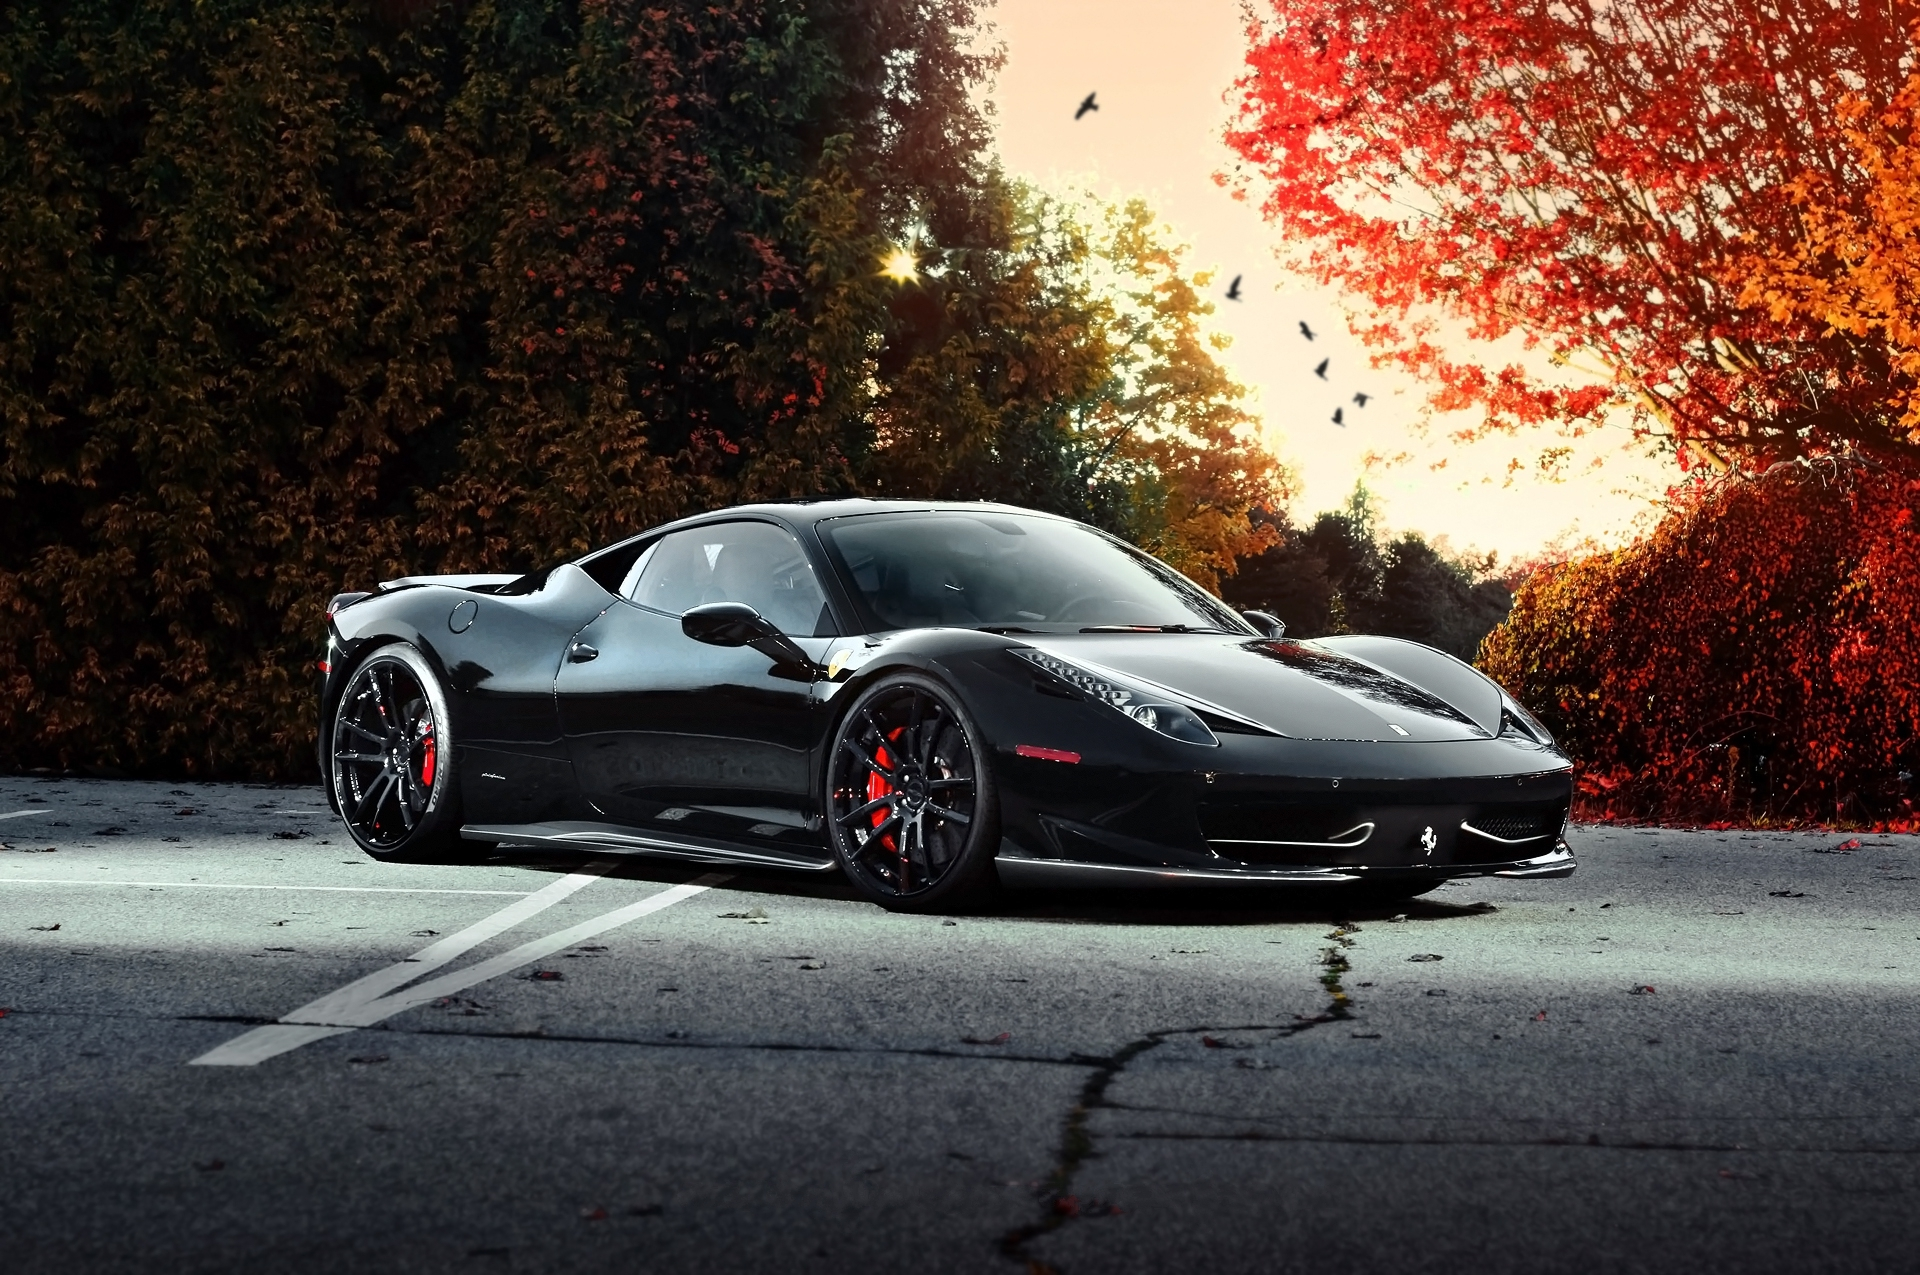 Ferrari 458 Wallpapers Wallpaper Cave